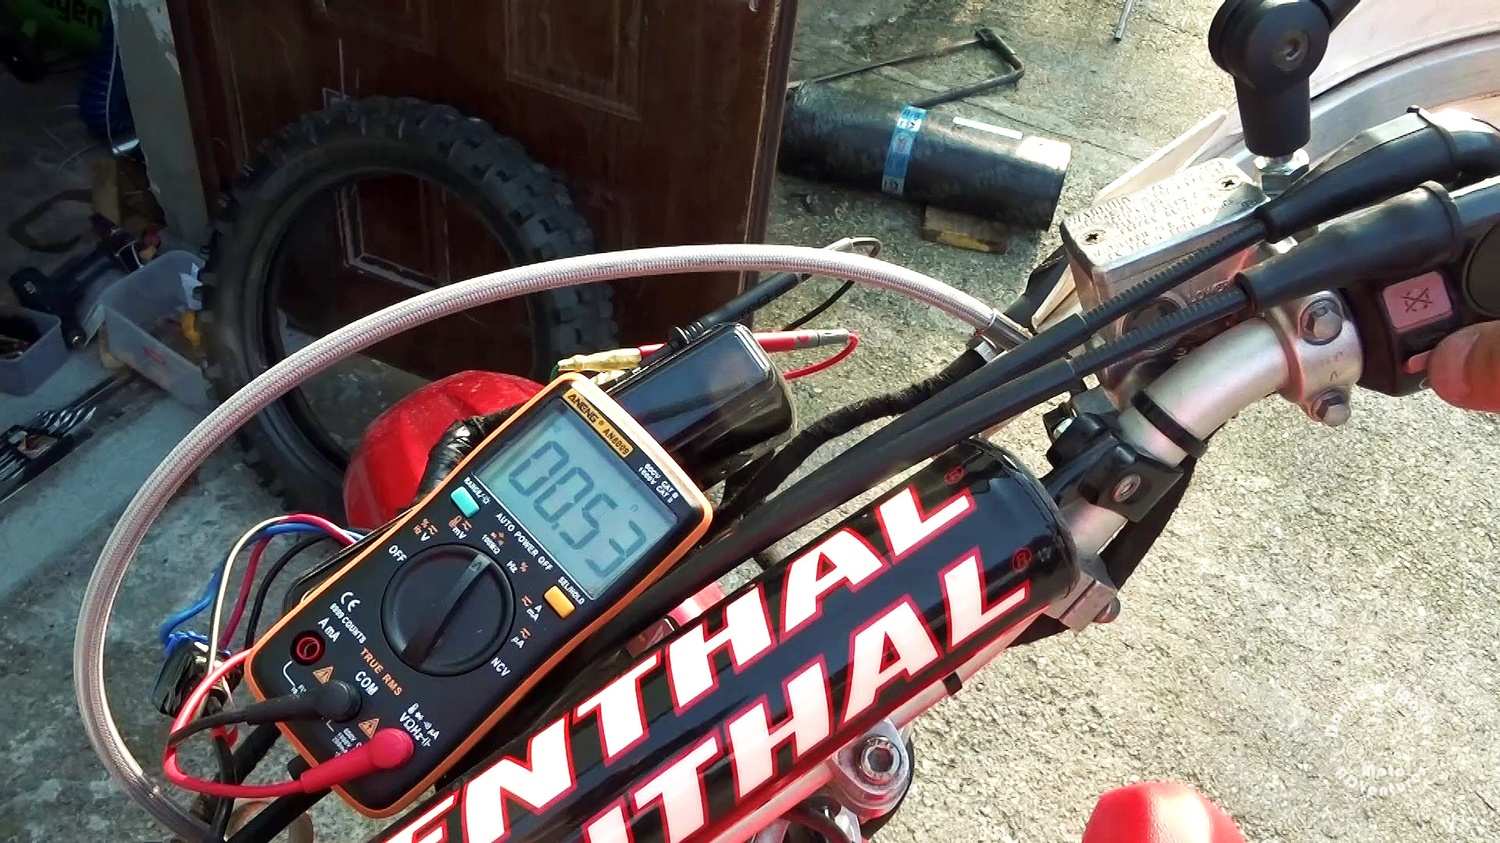 Testing the XR400 kill switch